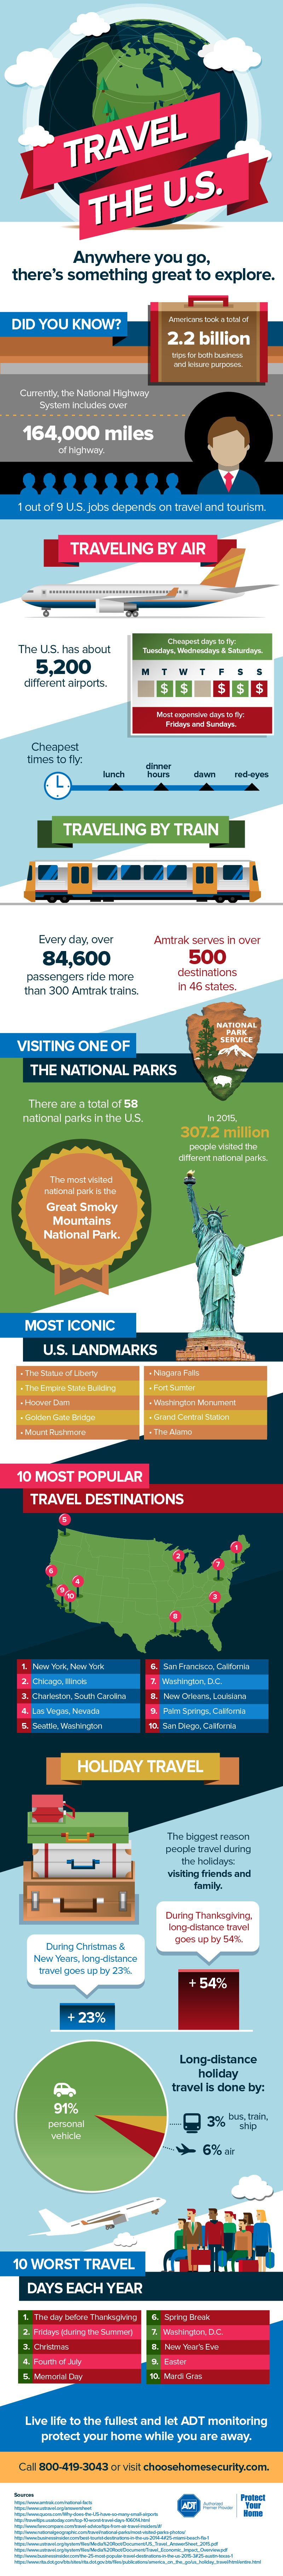 Travel the U.S. #Infographic